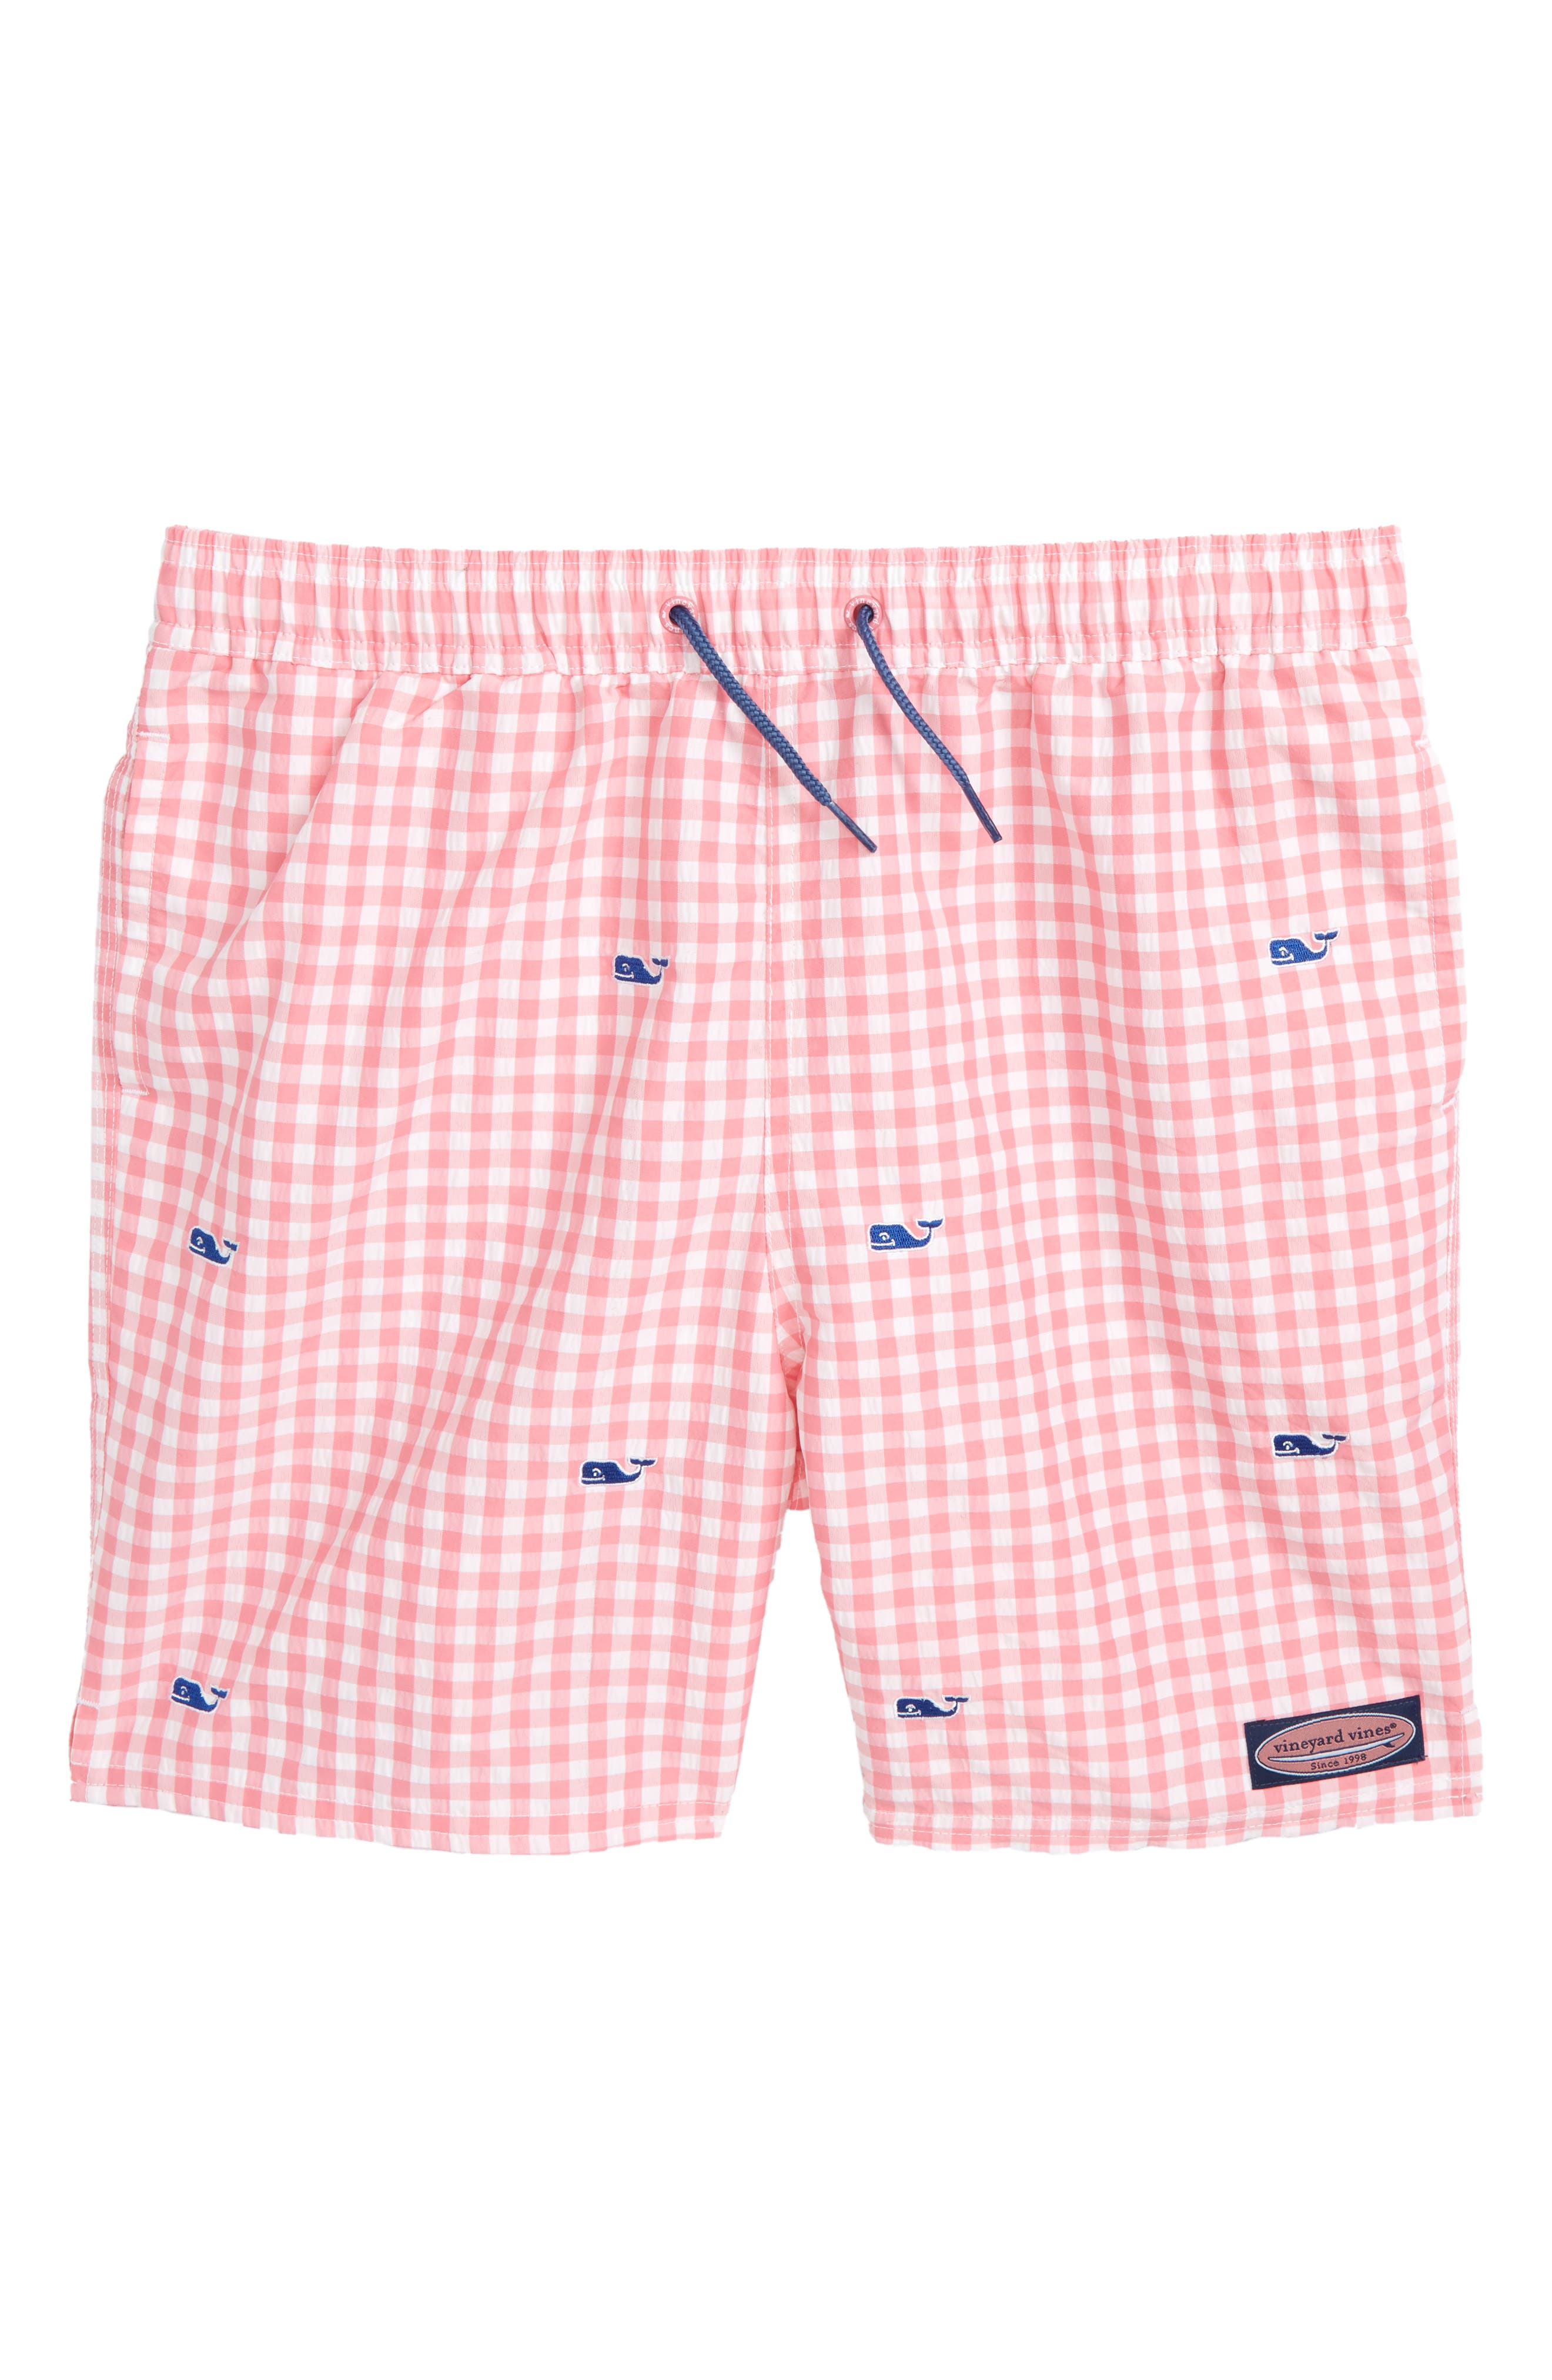 vineyard vines Embroidered Micro Gingham Check Swim Trunks (Big Boys)